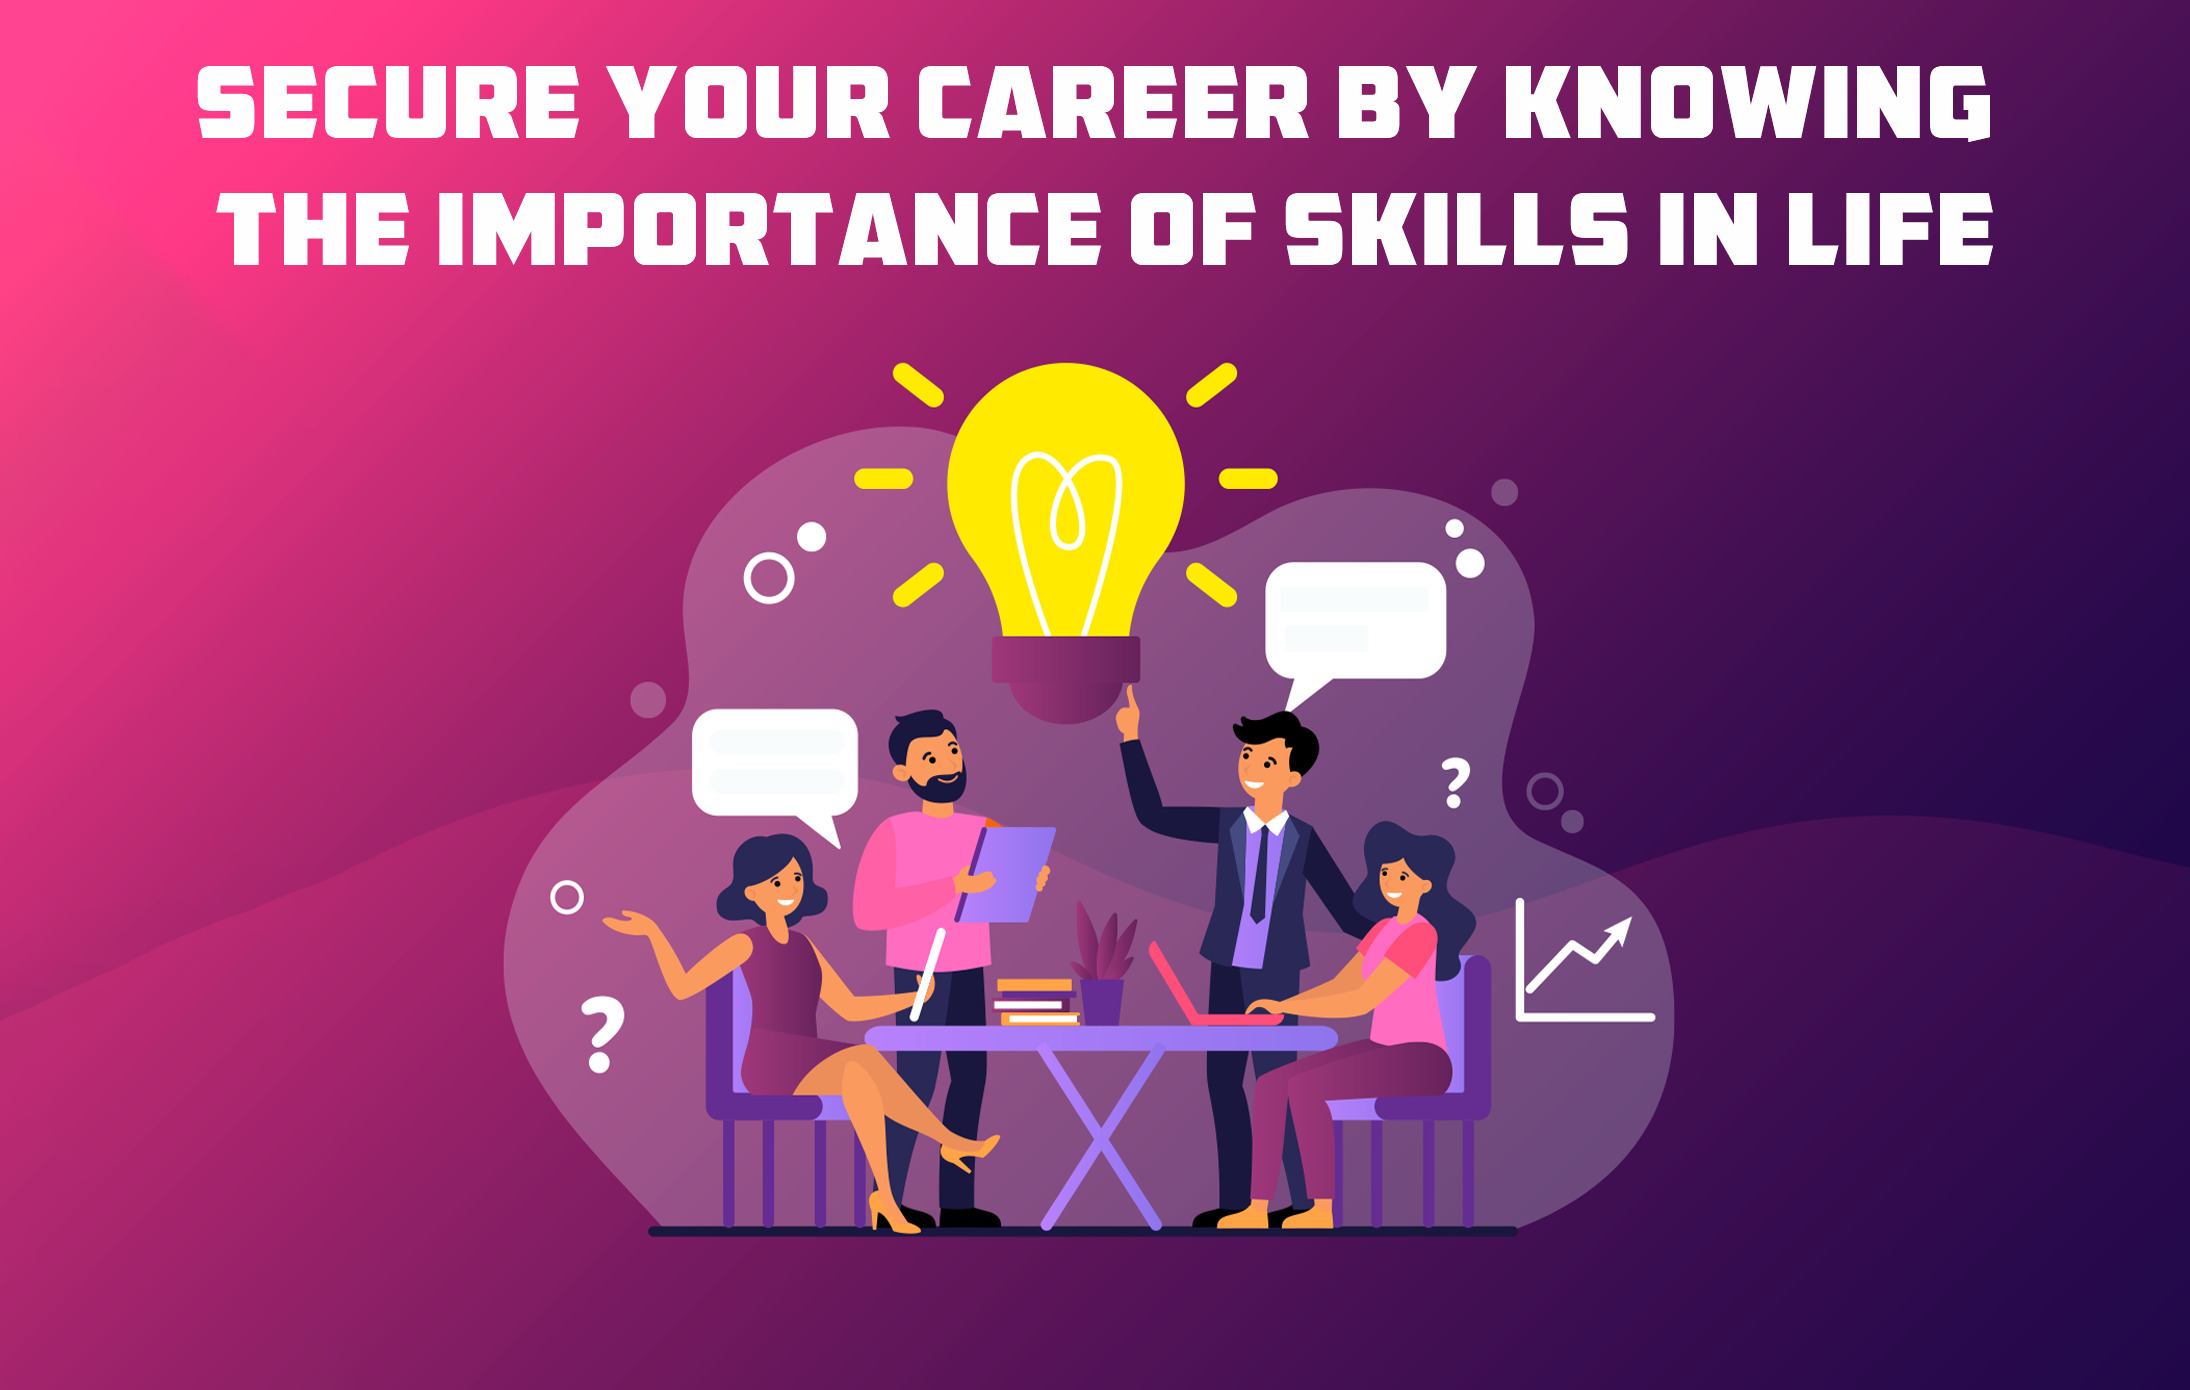 importance of skills in life